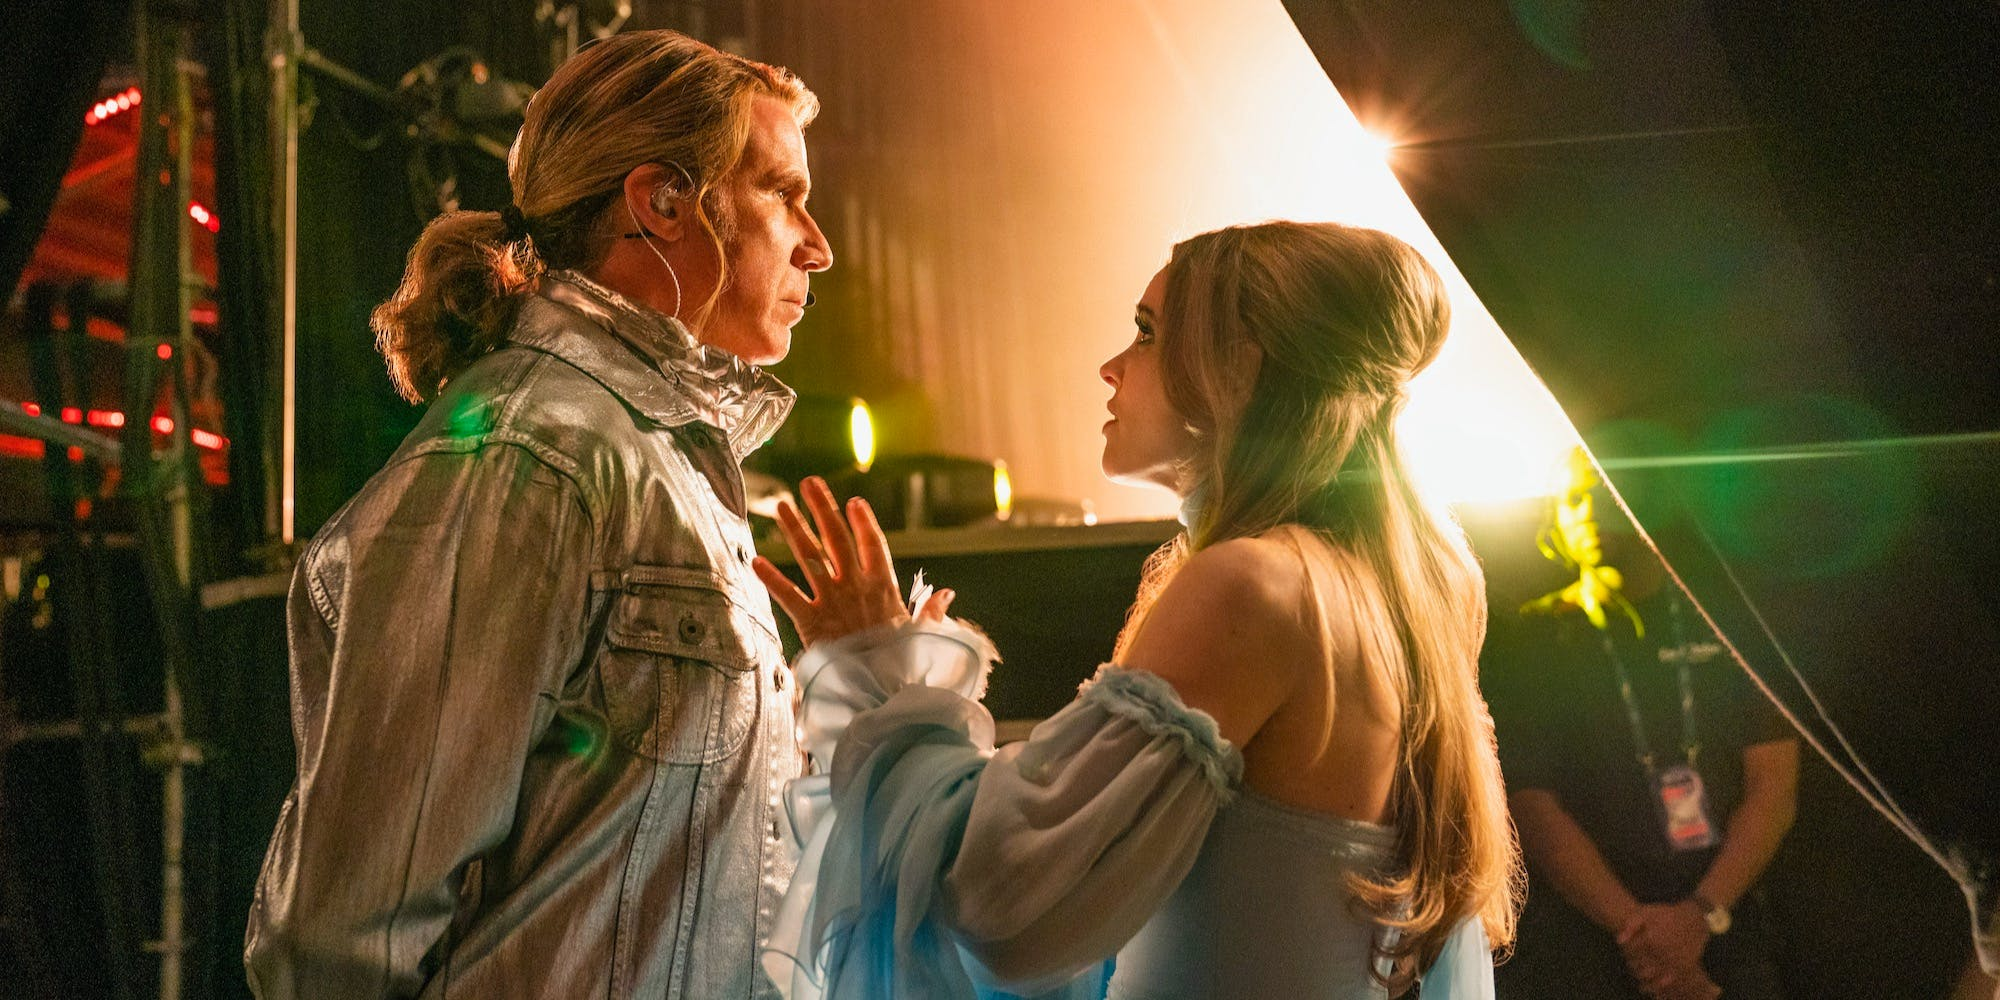 Will Ferrell and Rachel McAdams in Eurovision Song Contest: The Story of Fire Saga, one of the best new musicals on Netflix in 2020.